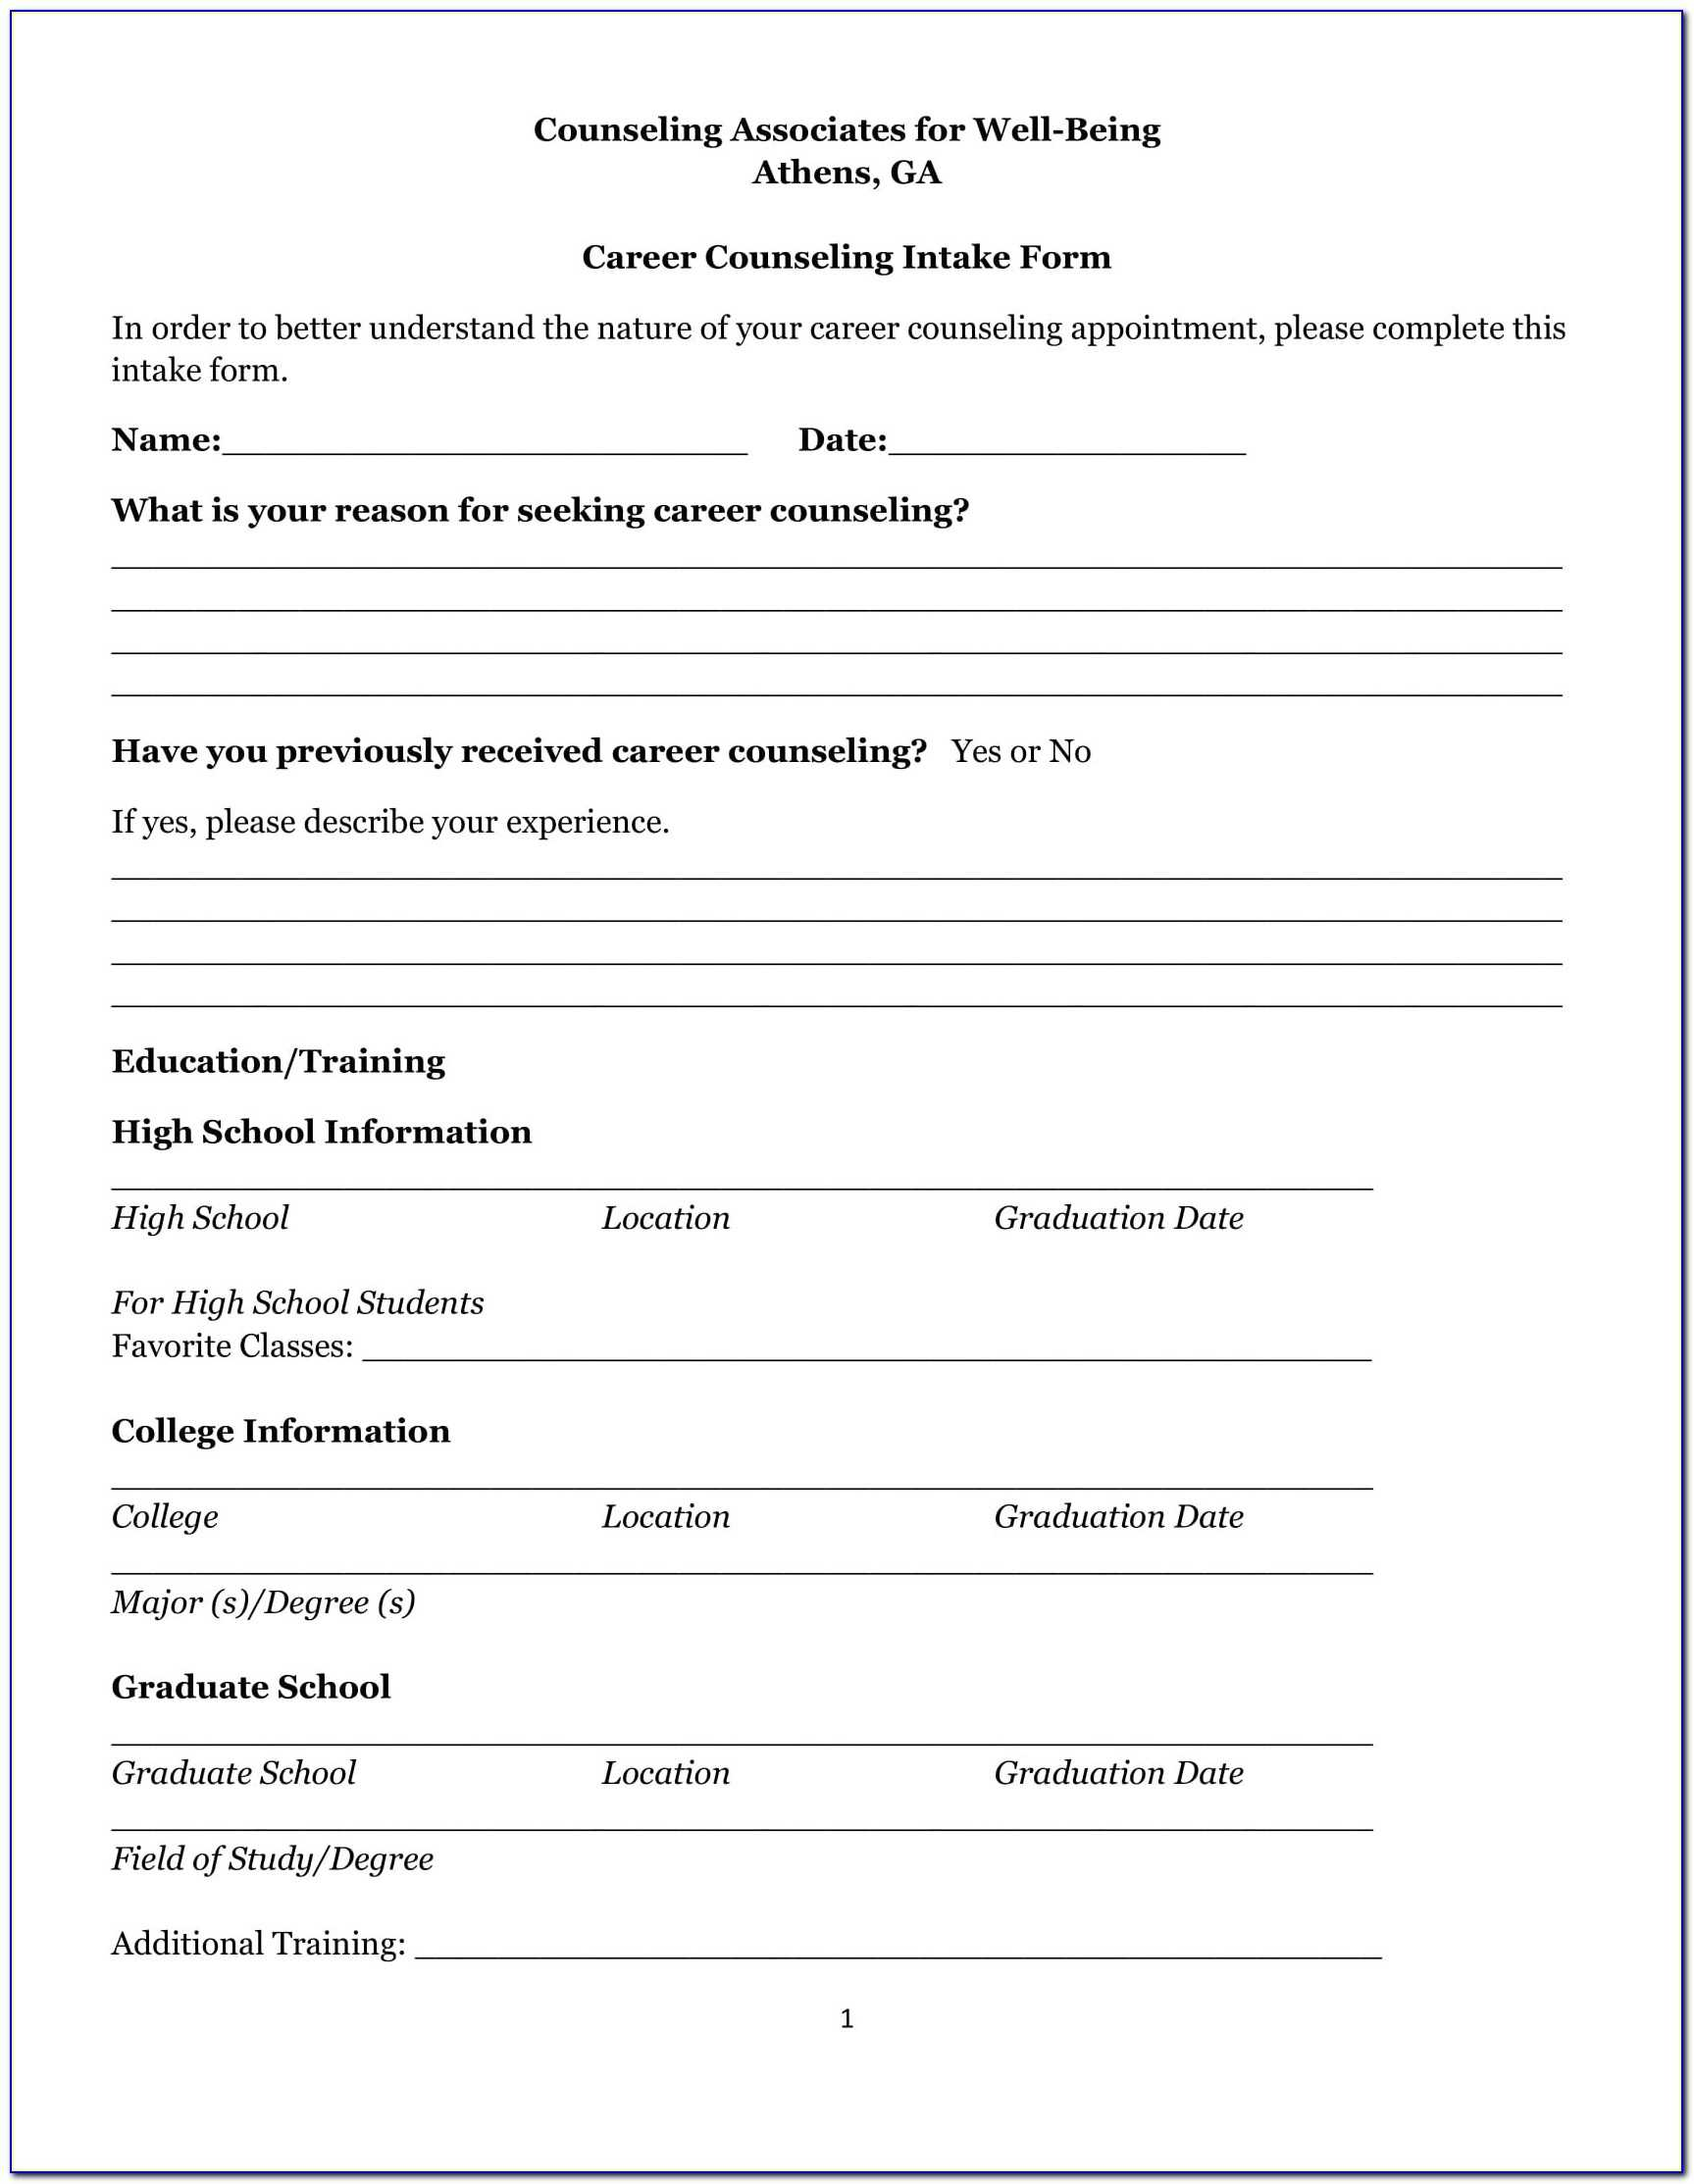 Premarital Counseling Certificate Of Completion Template Inside Premarital Counseling Certificate Of Completion Template